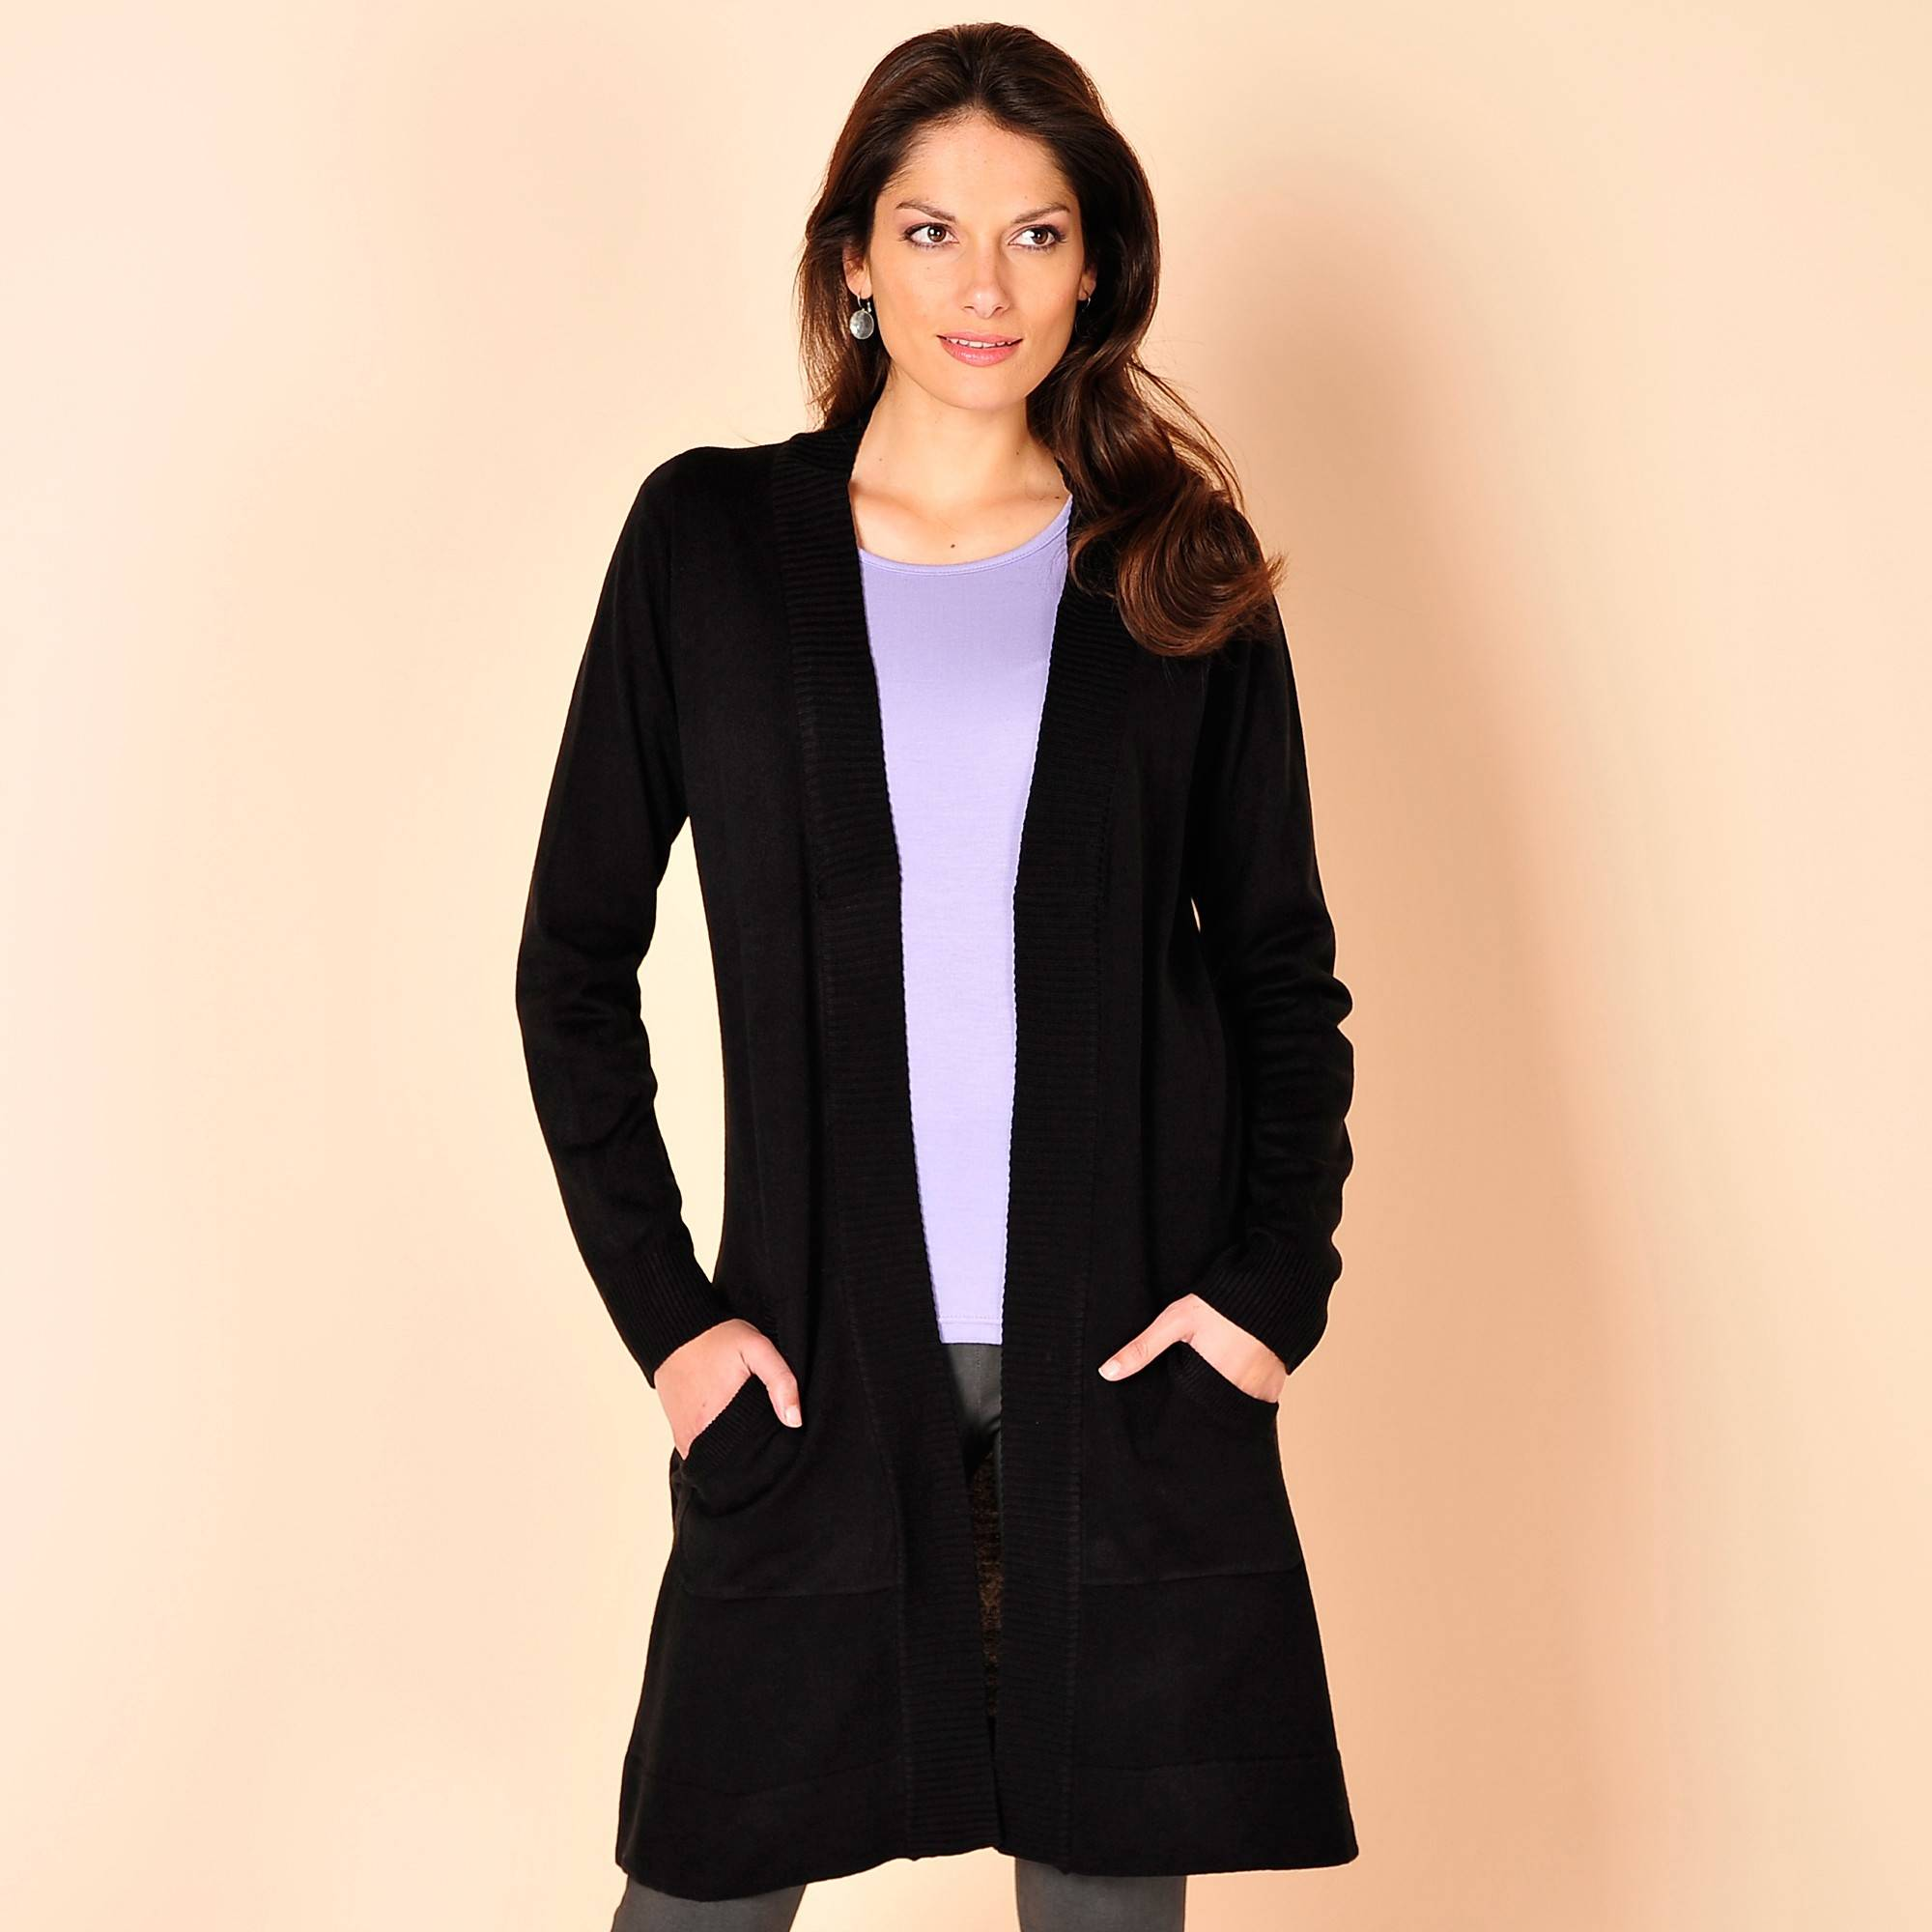 Gilet long - Noir - Taille : 58 - Blancheporte